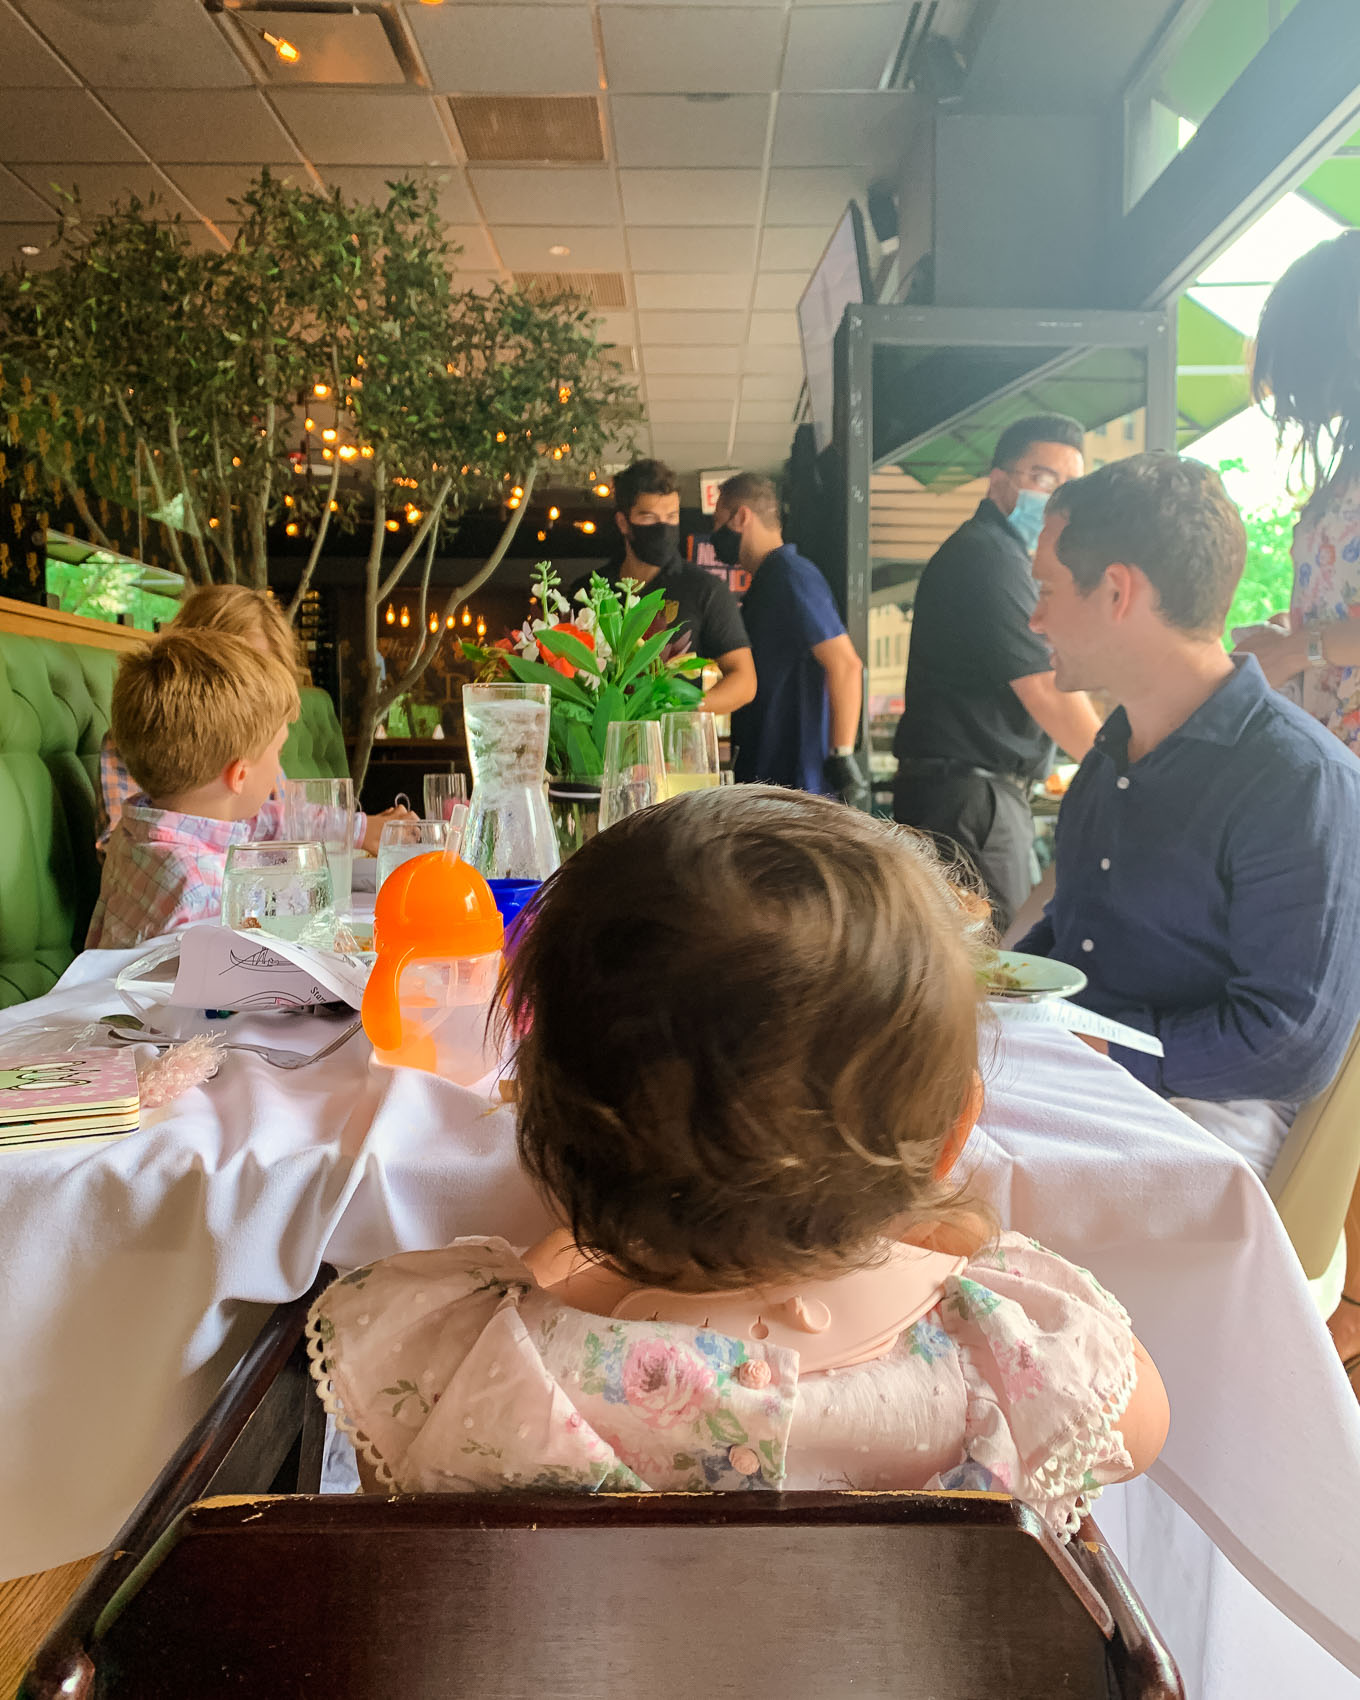 1st Birthday by popular Chicago lifestyle blog, Glass of Glam: image of a family sitting together at a restaurant table.